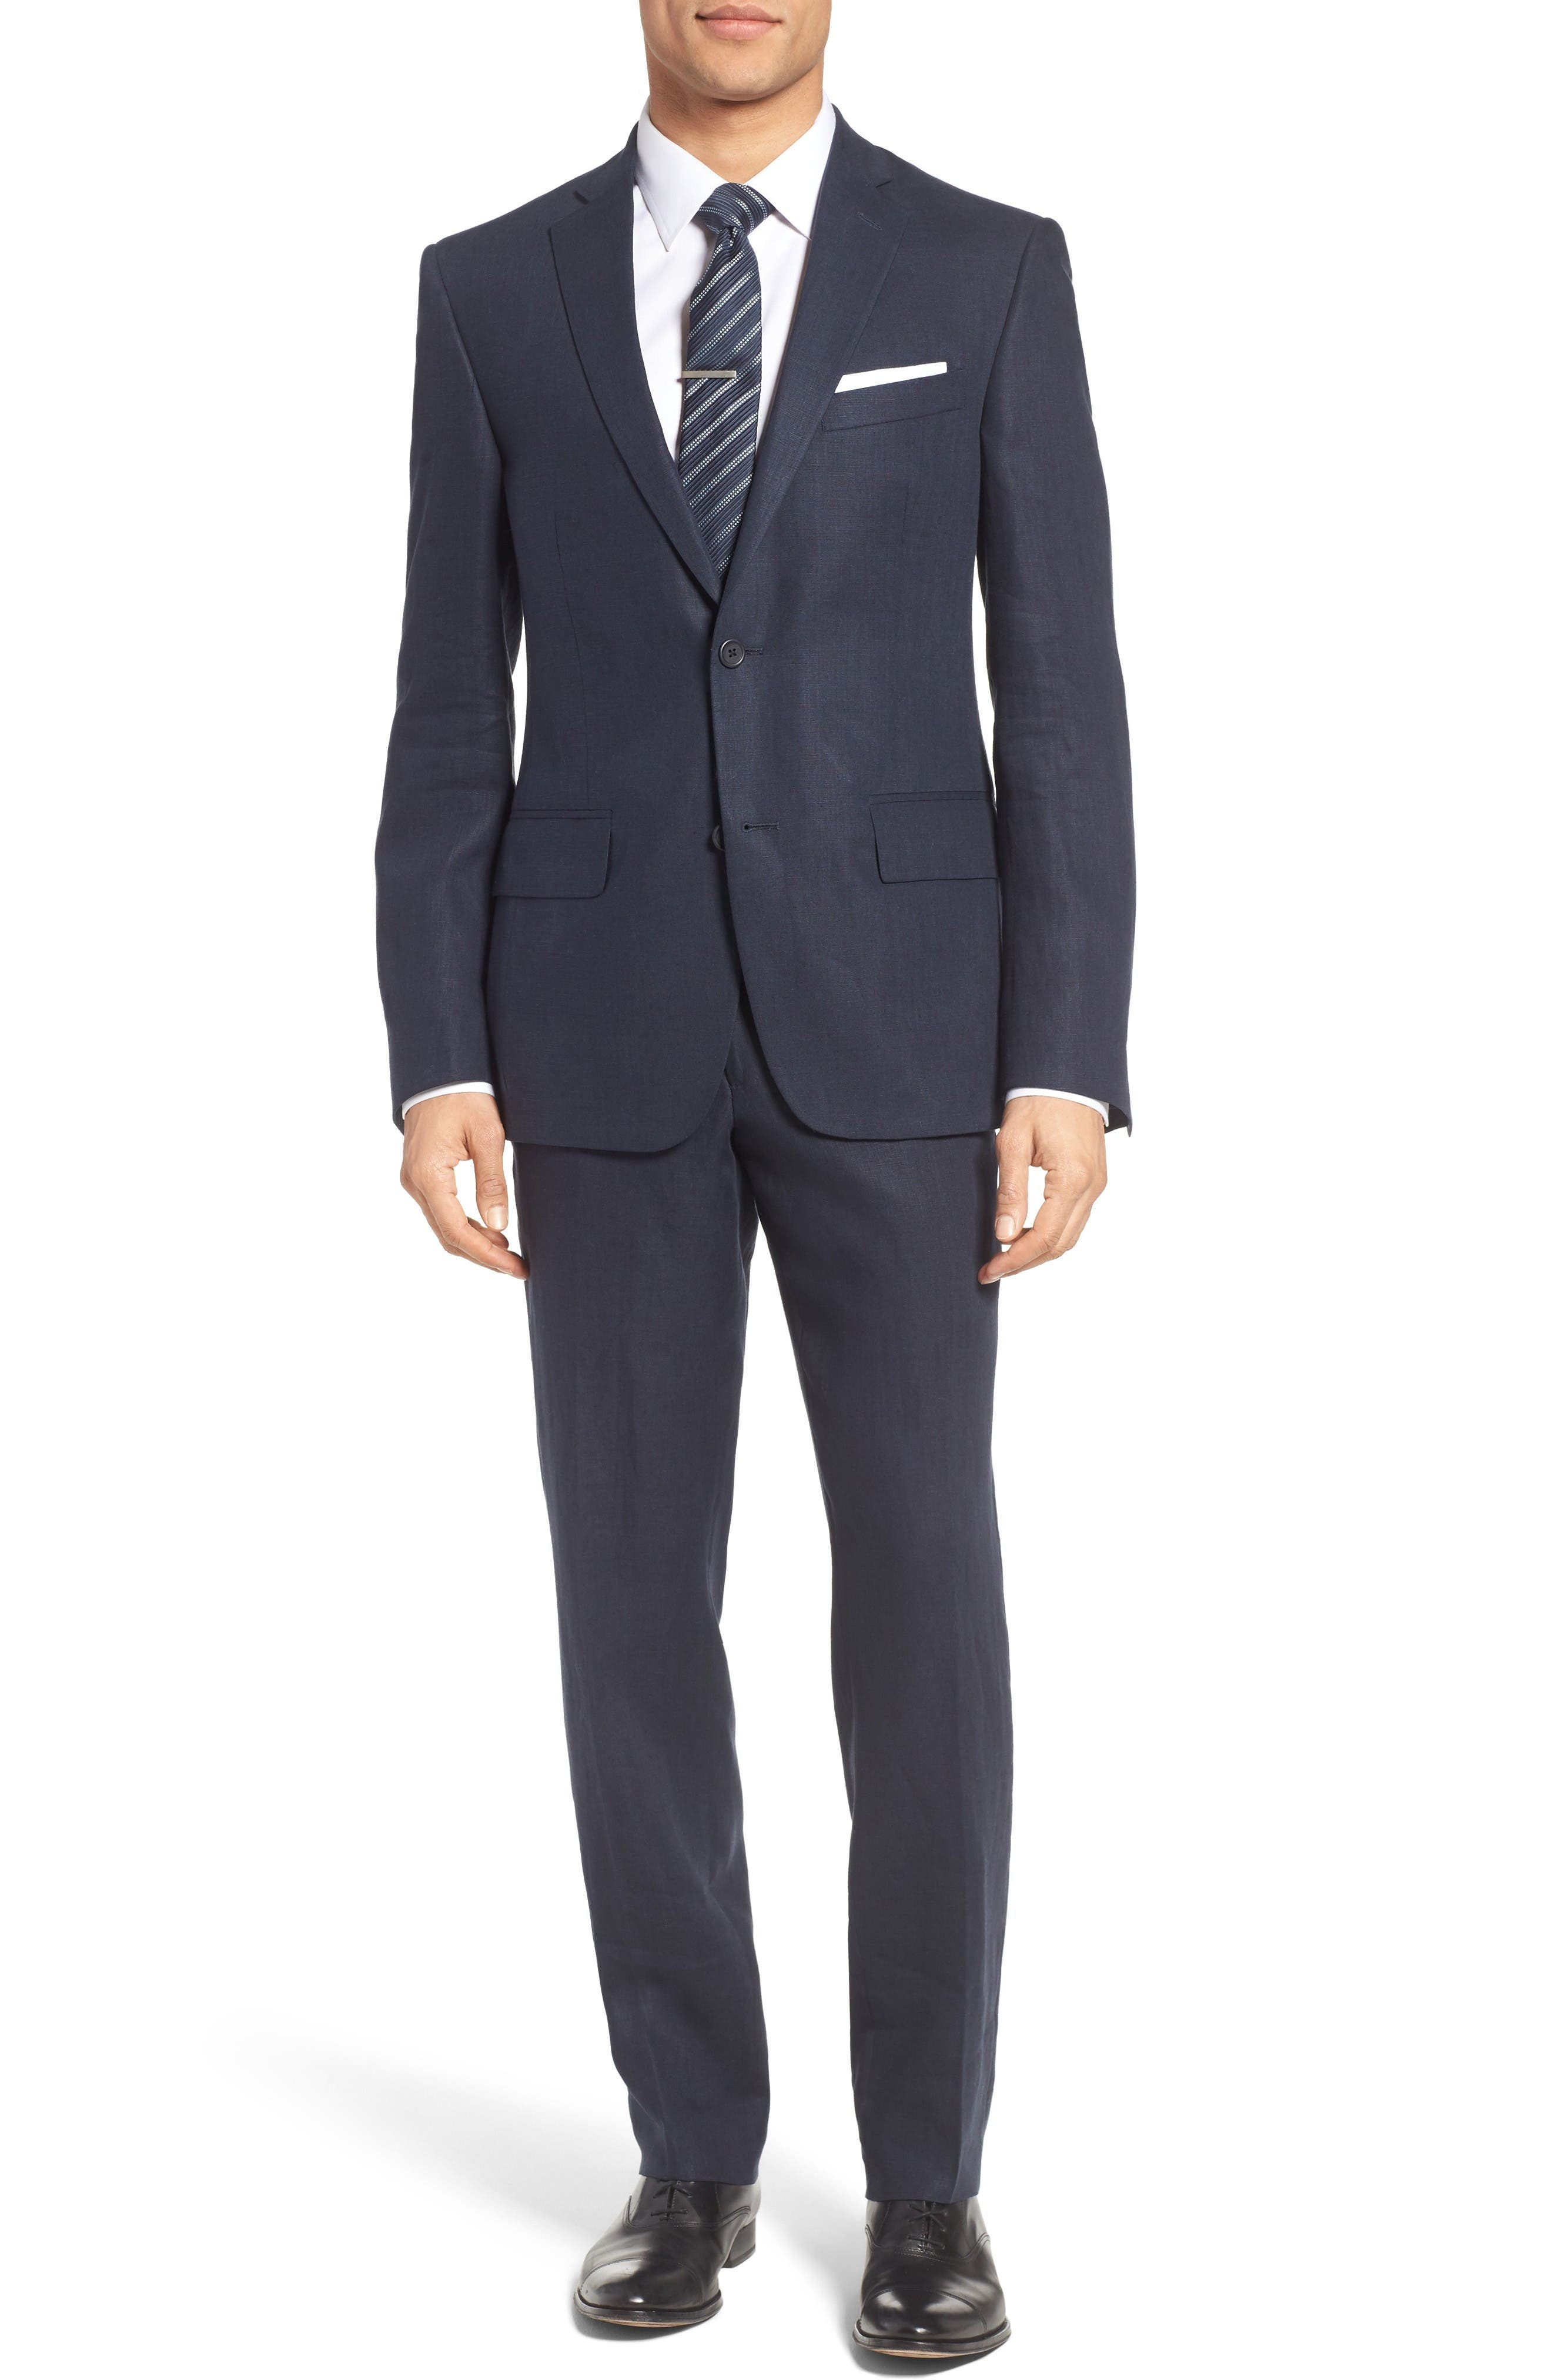 Nordstrom Men's Shop Linen Blazer & Trousers Outfit with Accessories